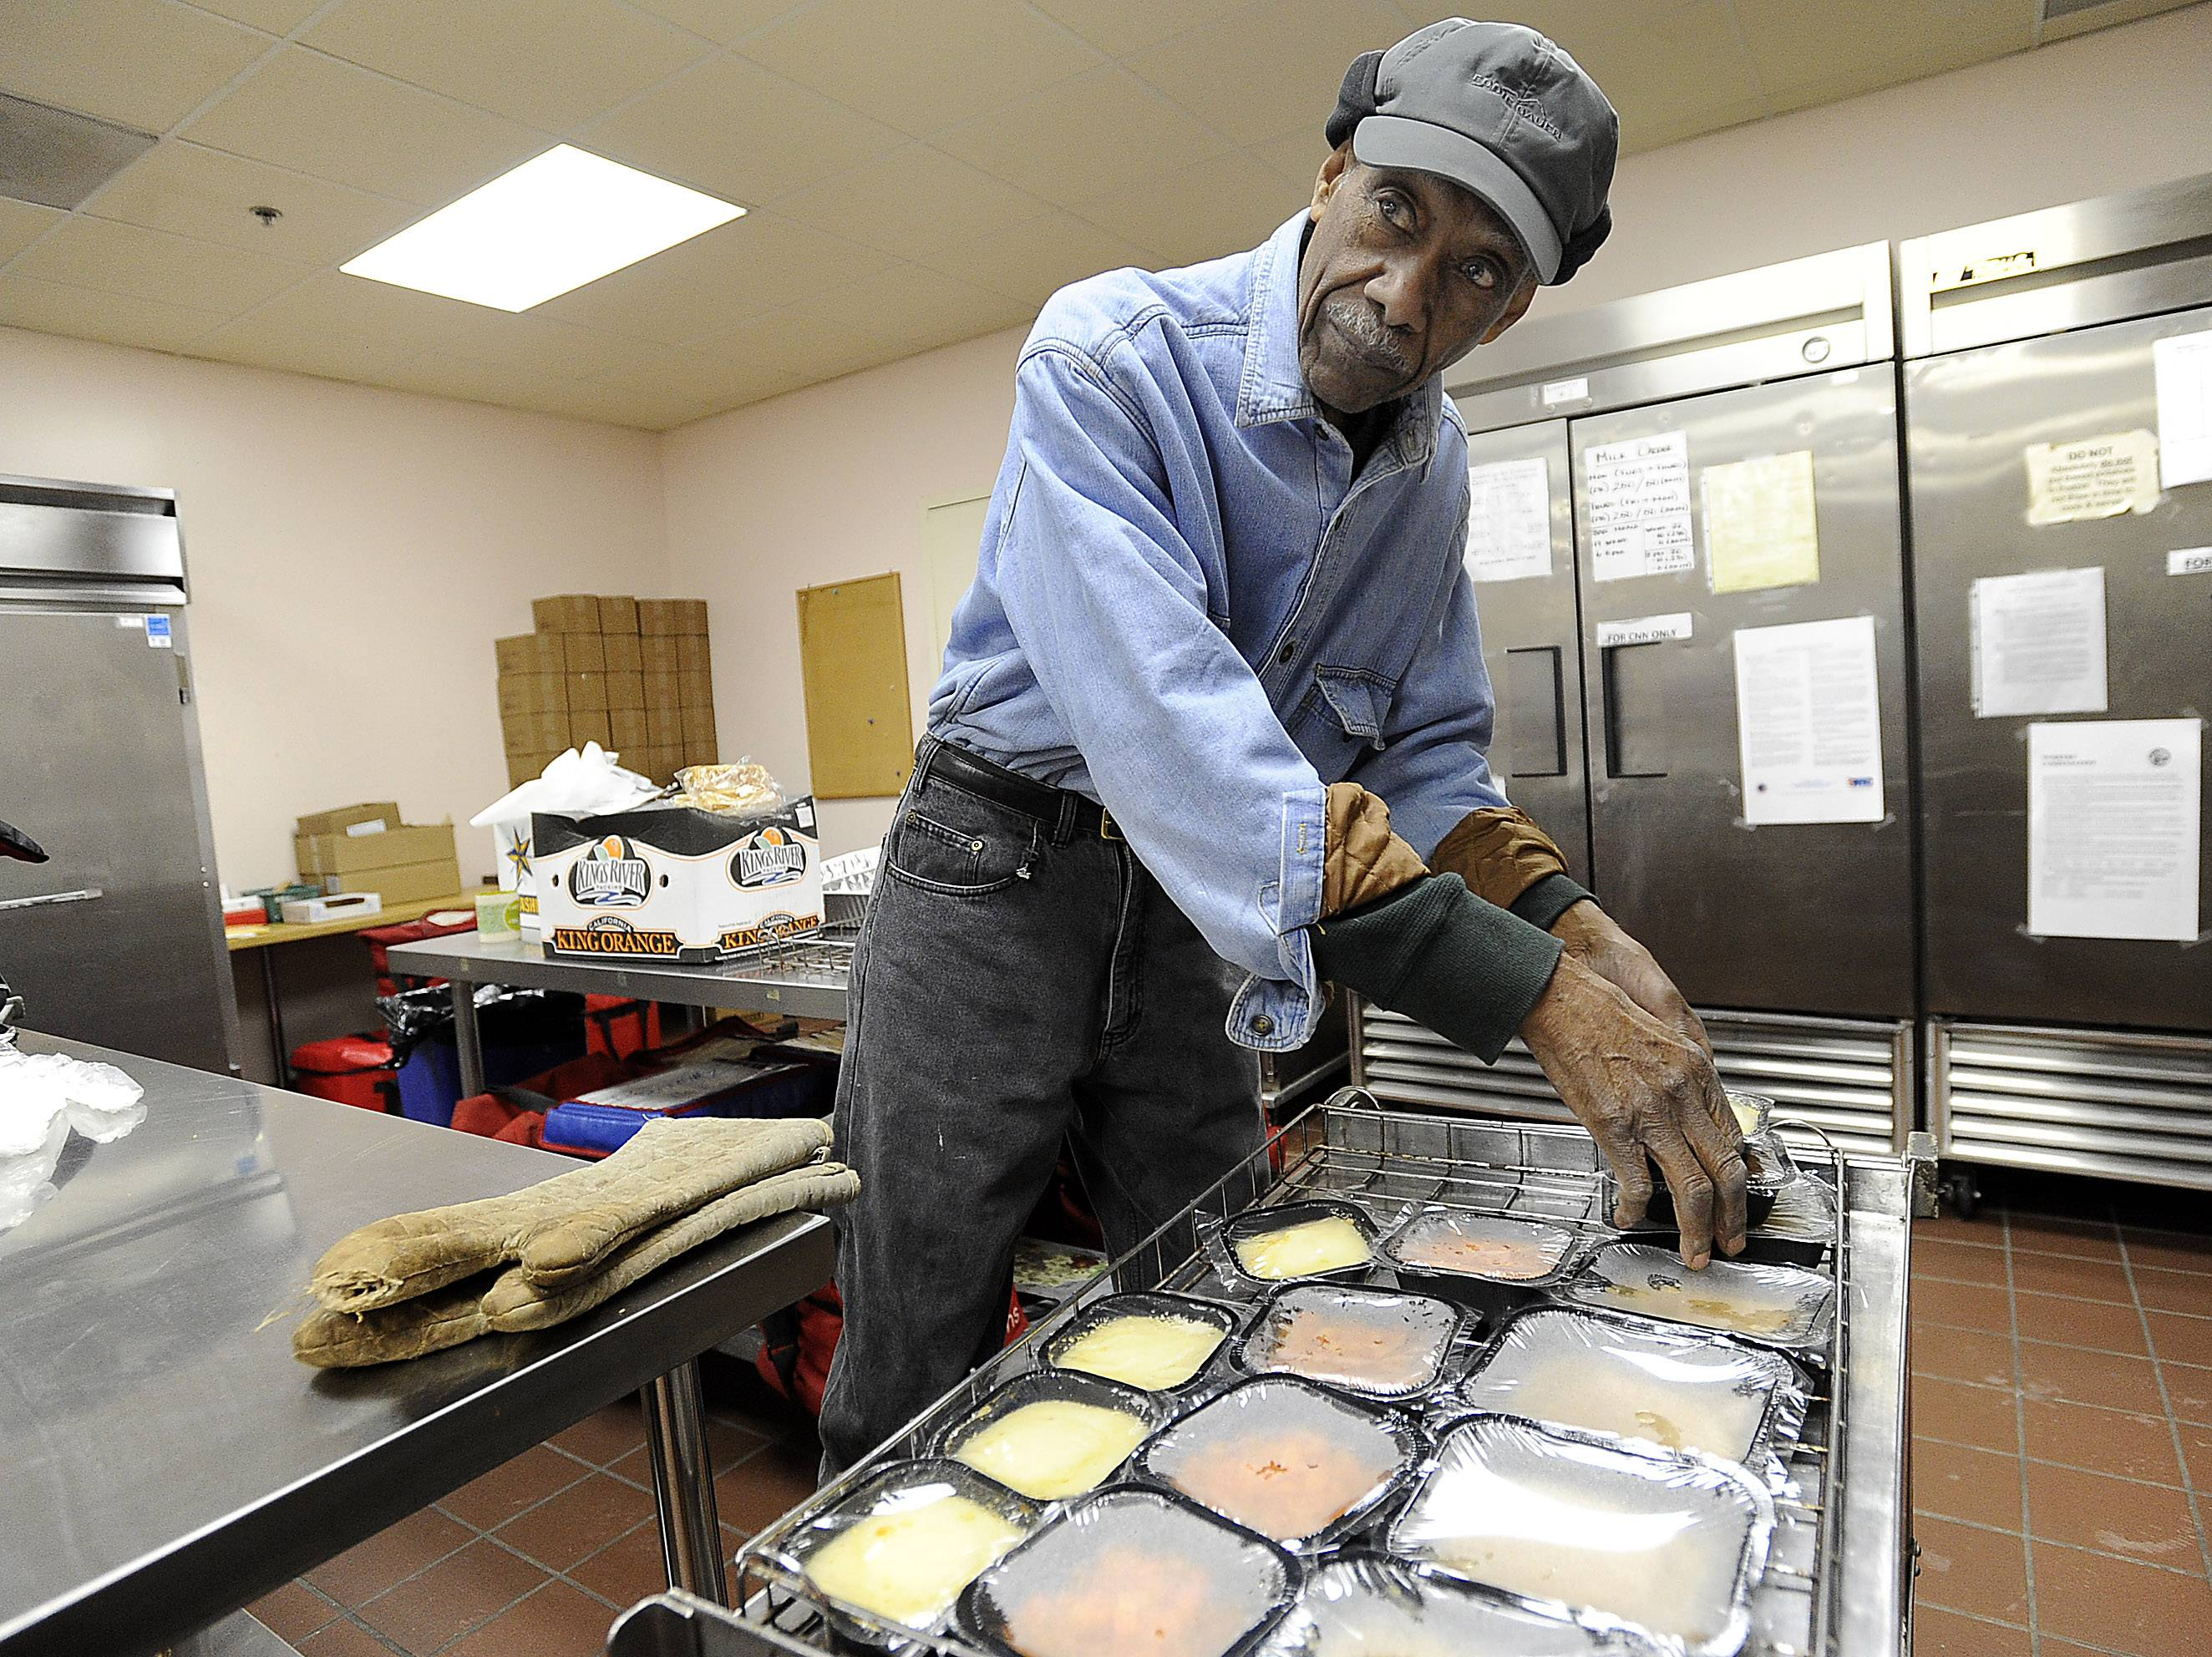 Meals on Wheels driver Samuel Grimes, 88, prepares hot meals for his delivery route. In DuPage County, the Senior Citizens Council was able to continue its meal service despite receiving no state money by closing their community dining sites. The community dining services are set to reopen in May.